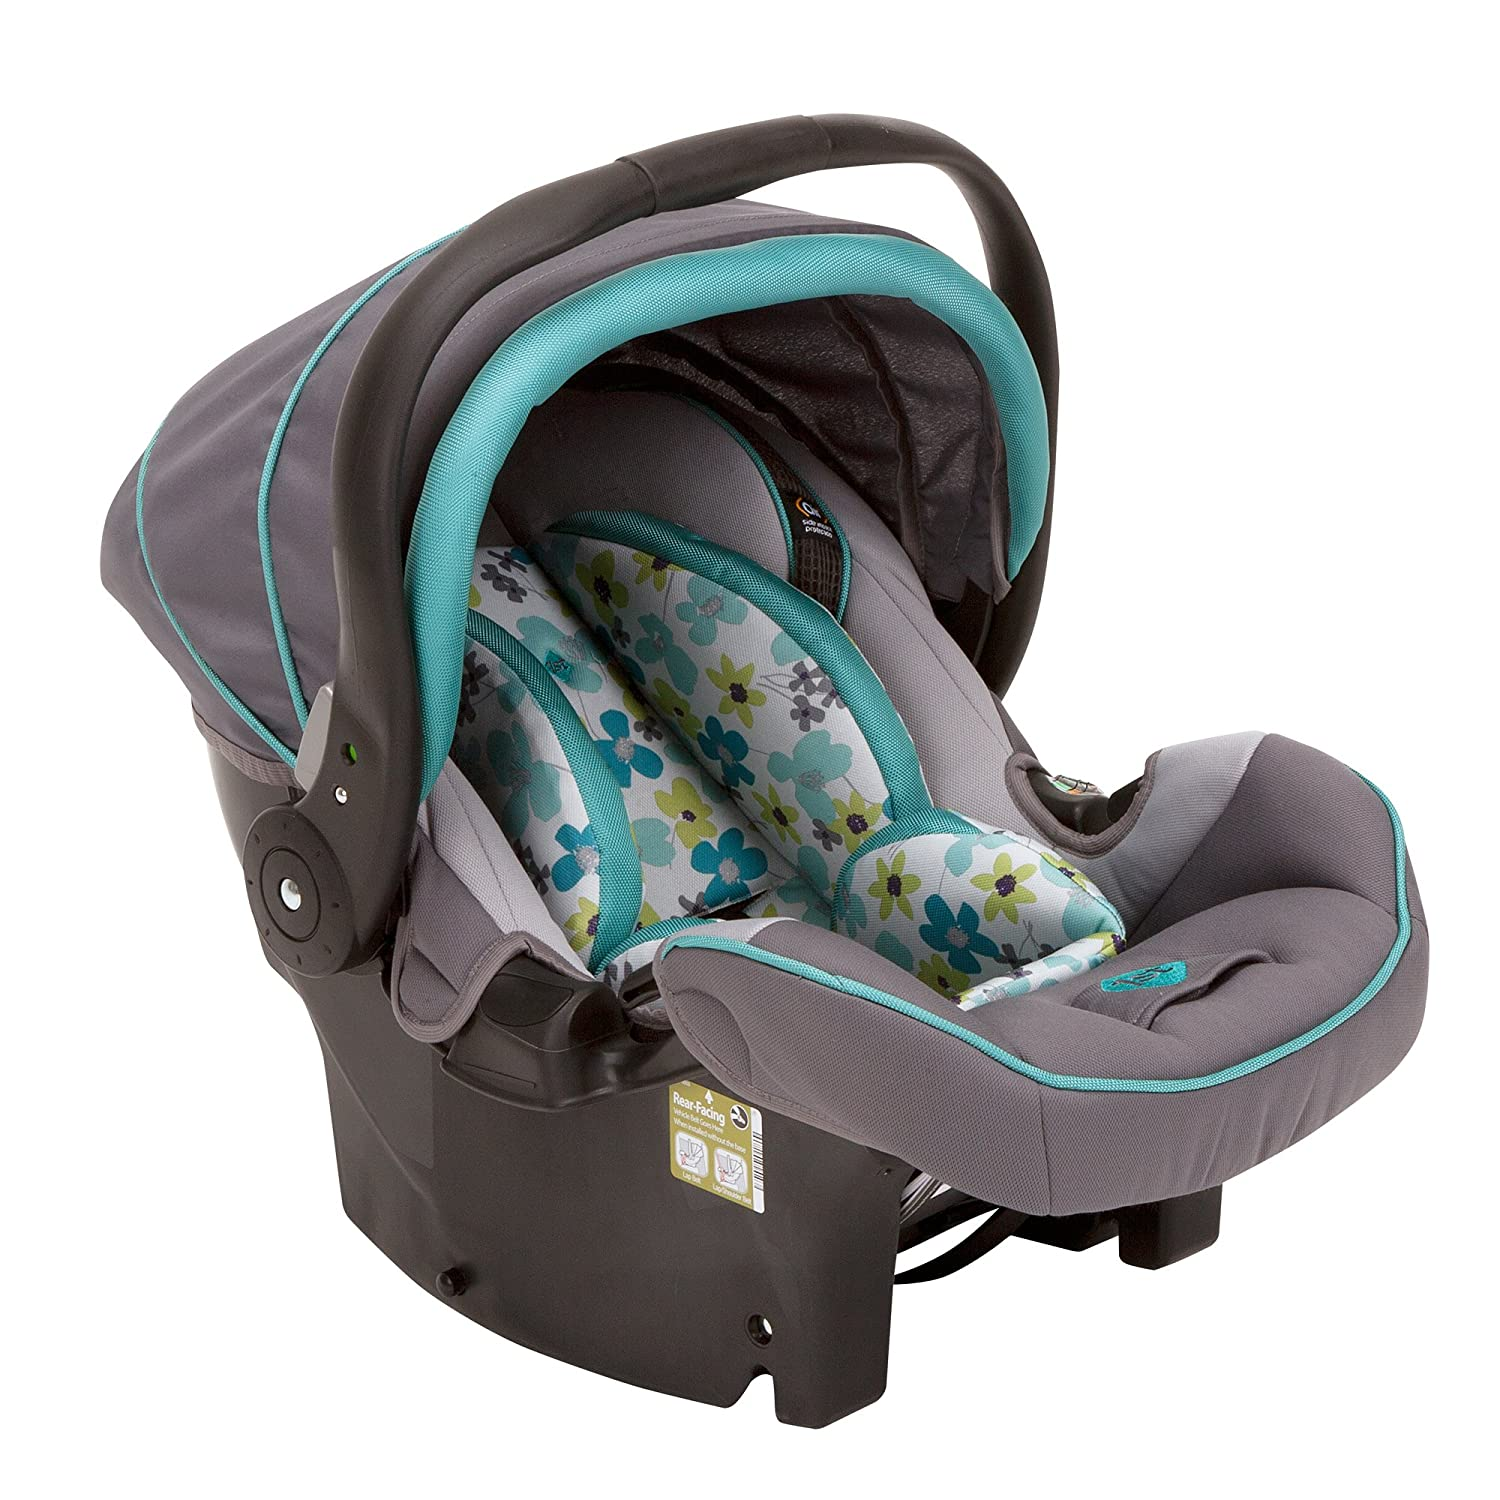 Amazon.com : Safety 1st OnBoard Plus Infant Car Seat, Plumberry : Baby